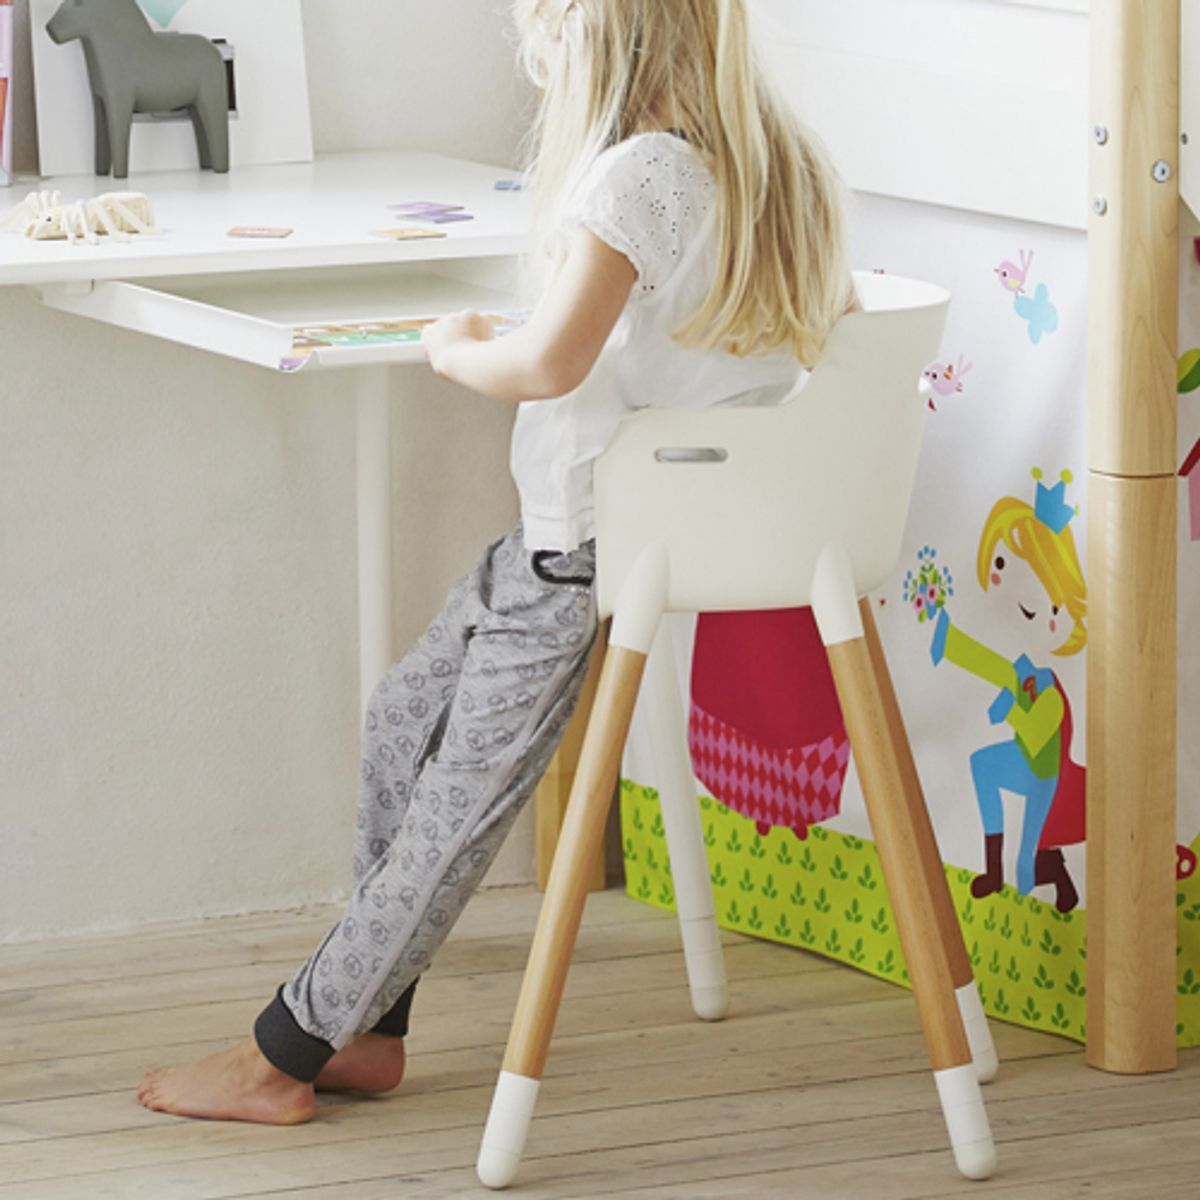 Chaise Junior en hêtre avec assise réglable Flexa